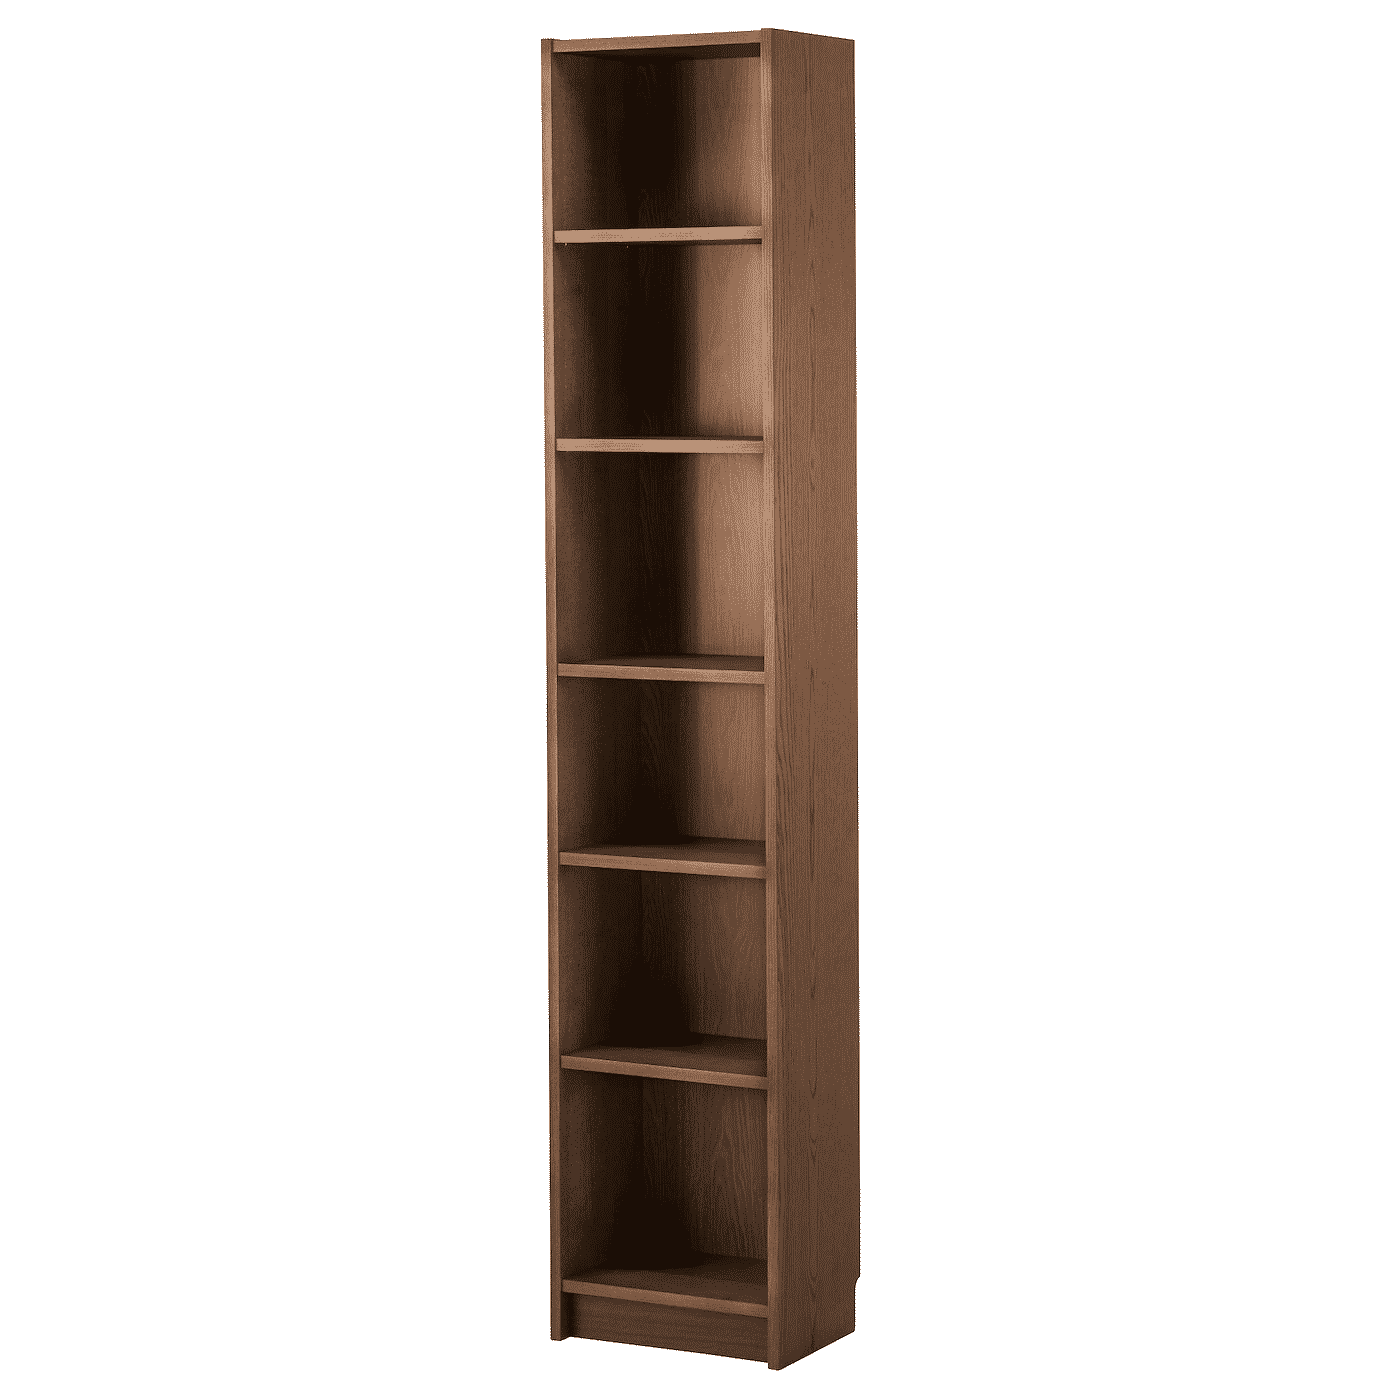 The BILLY Bookcase 2